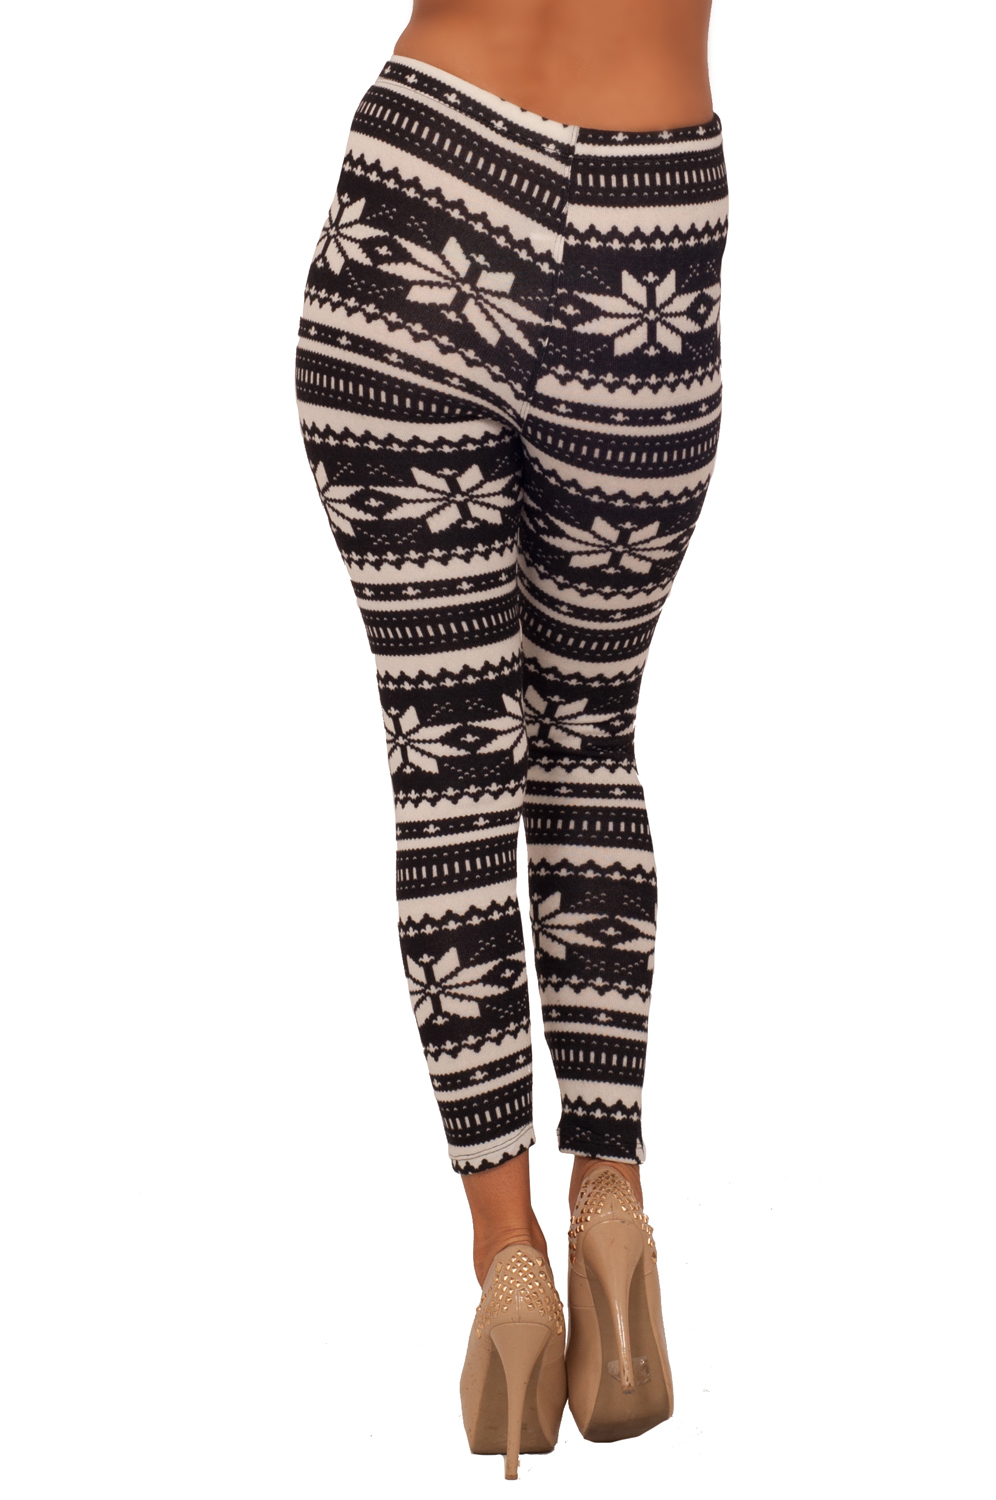 The only other tights that might compete in this regard are The North Face Women's Winter Warm Tights, which also feature a brushed, fleece-like interior and an equally warm fabric blend.